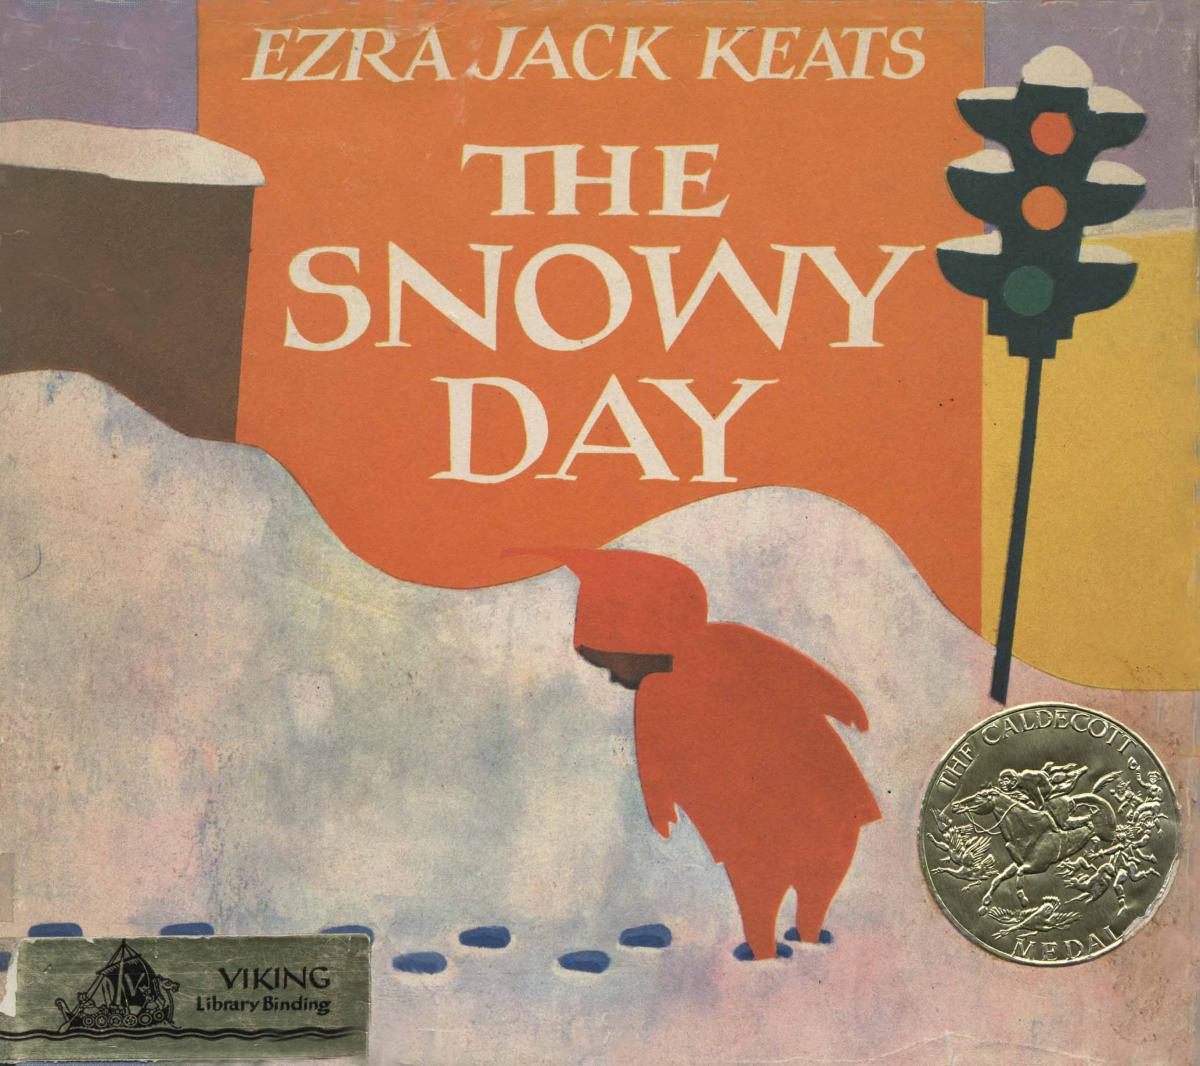 The Snowy Day - book cover image